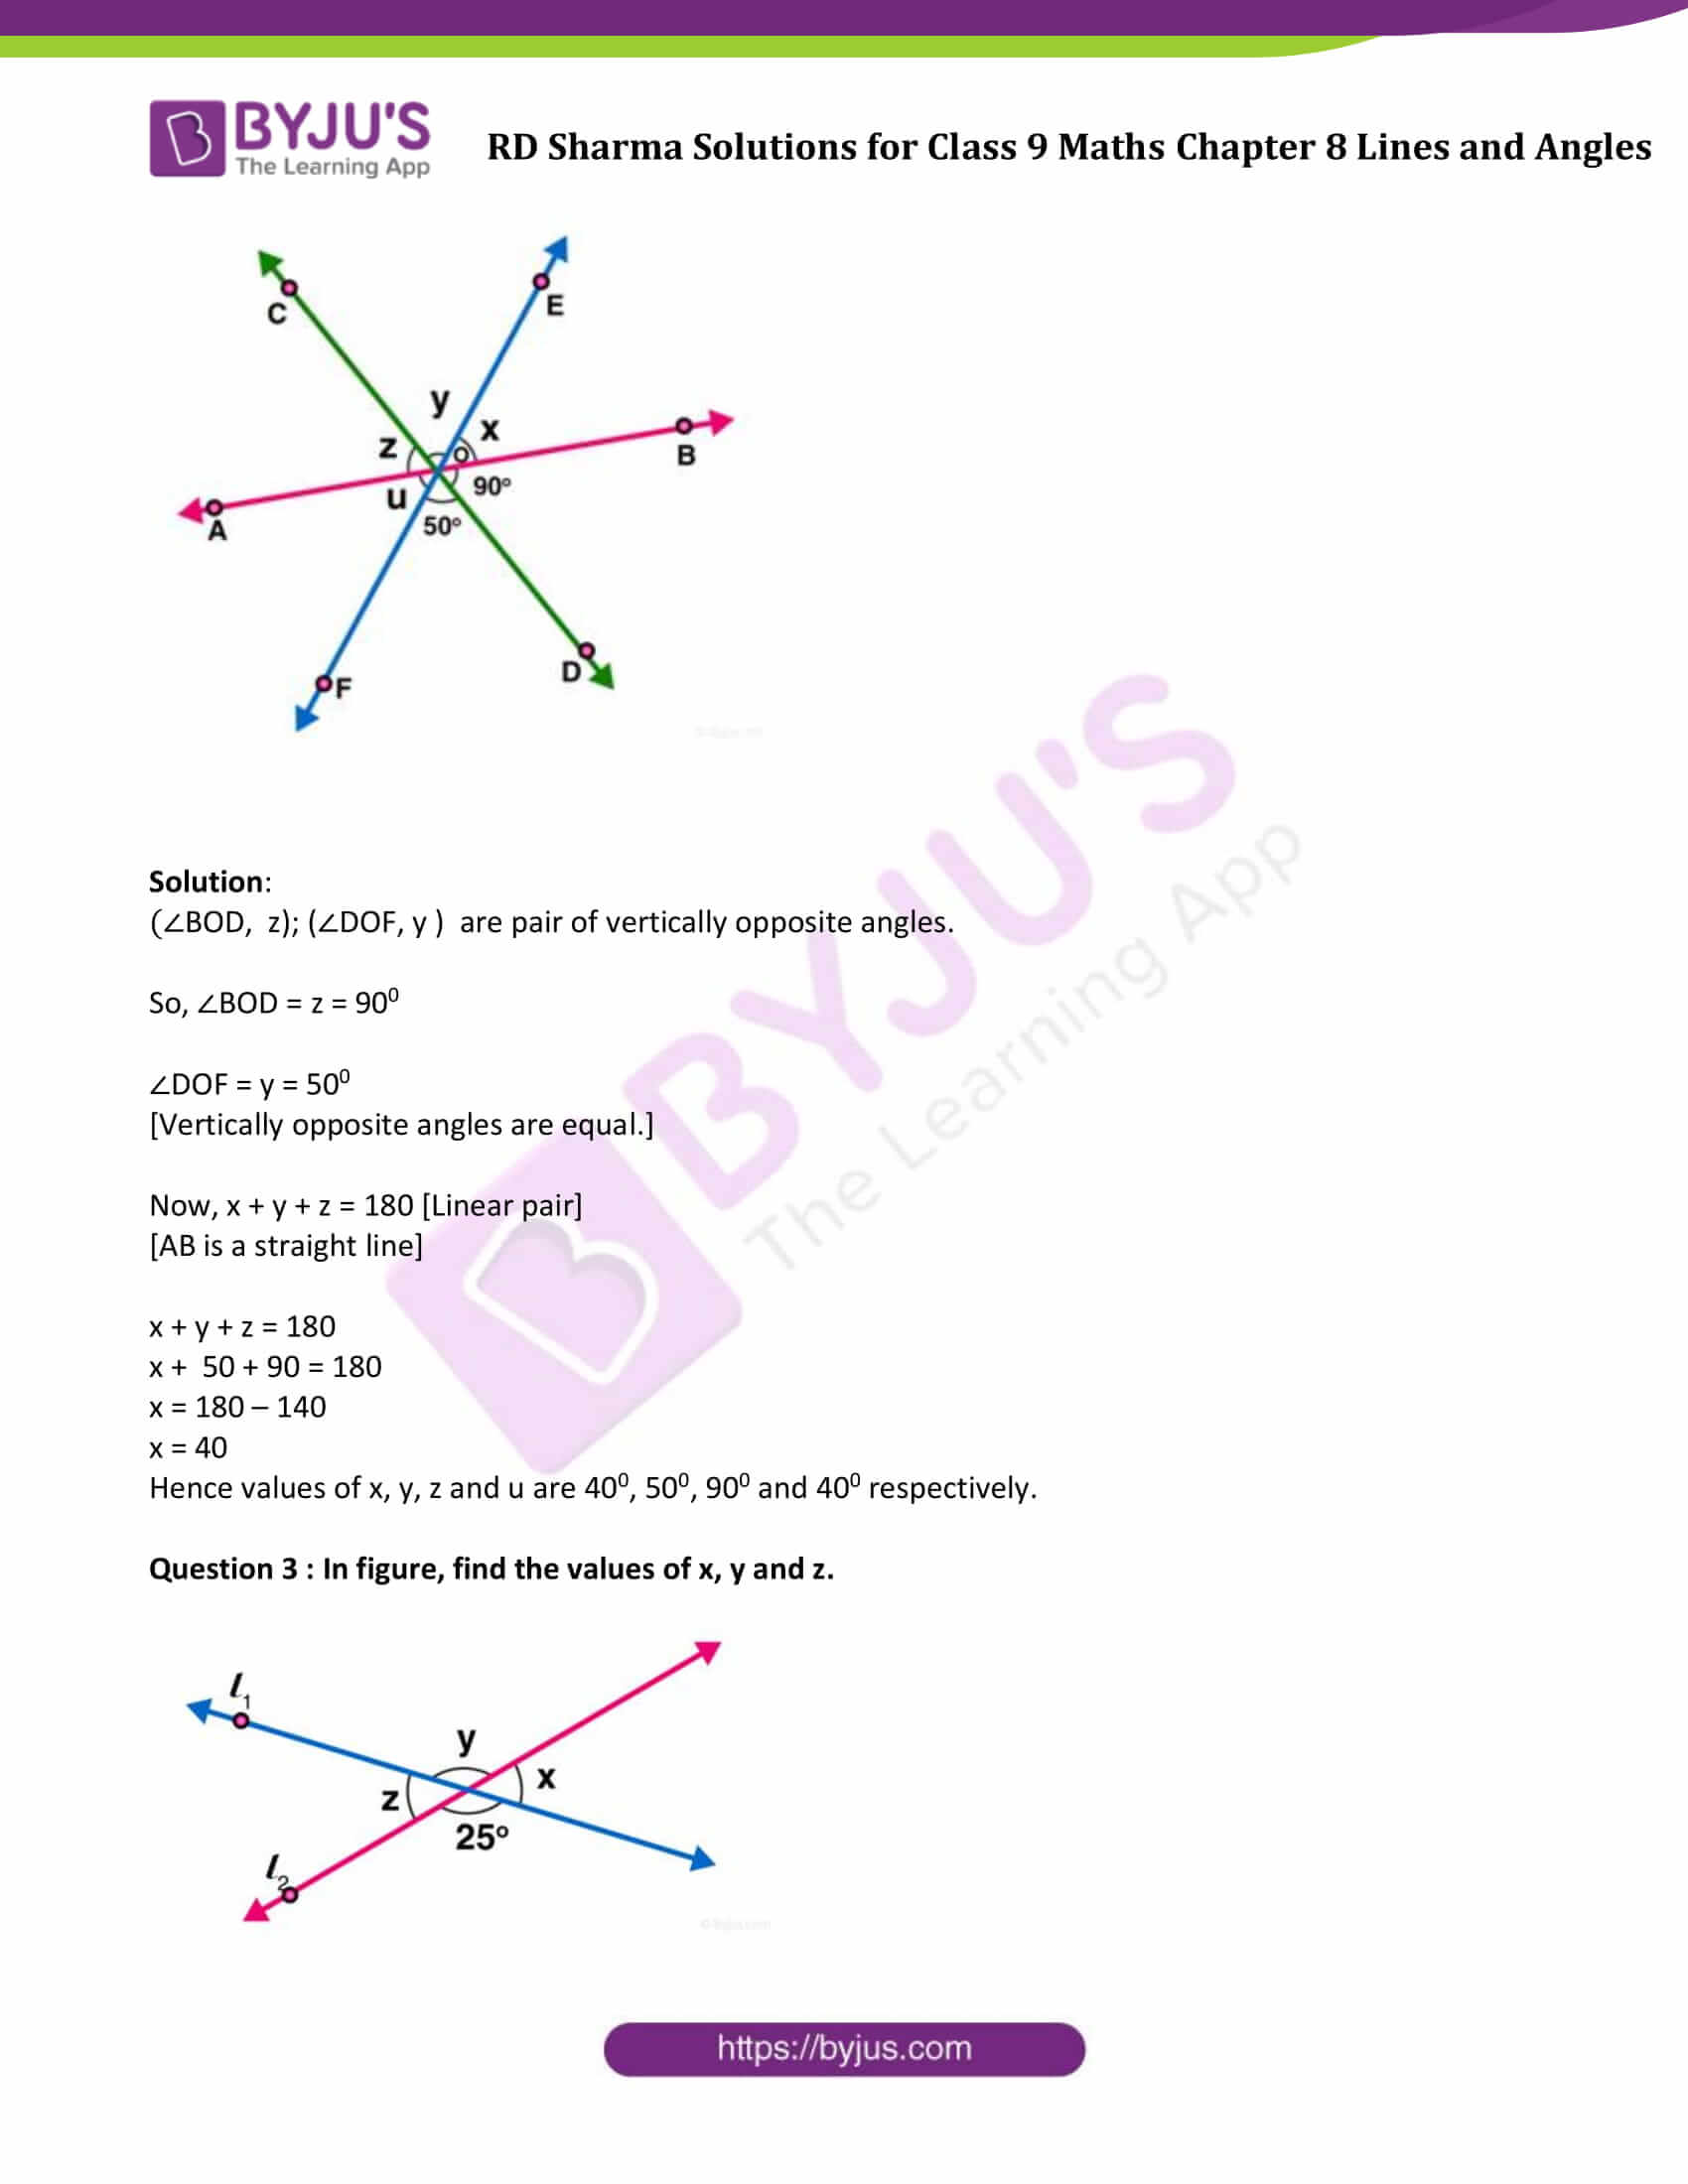 RD Sharma Solution class 9 Maths Chapter 8 Lines and Angles 12